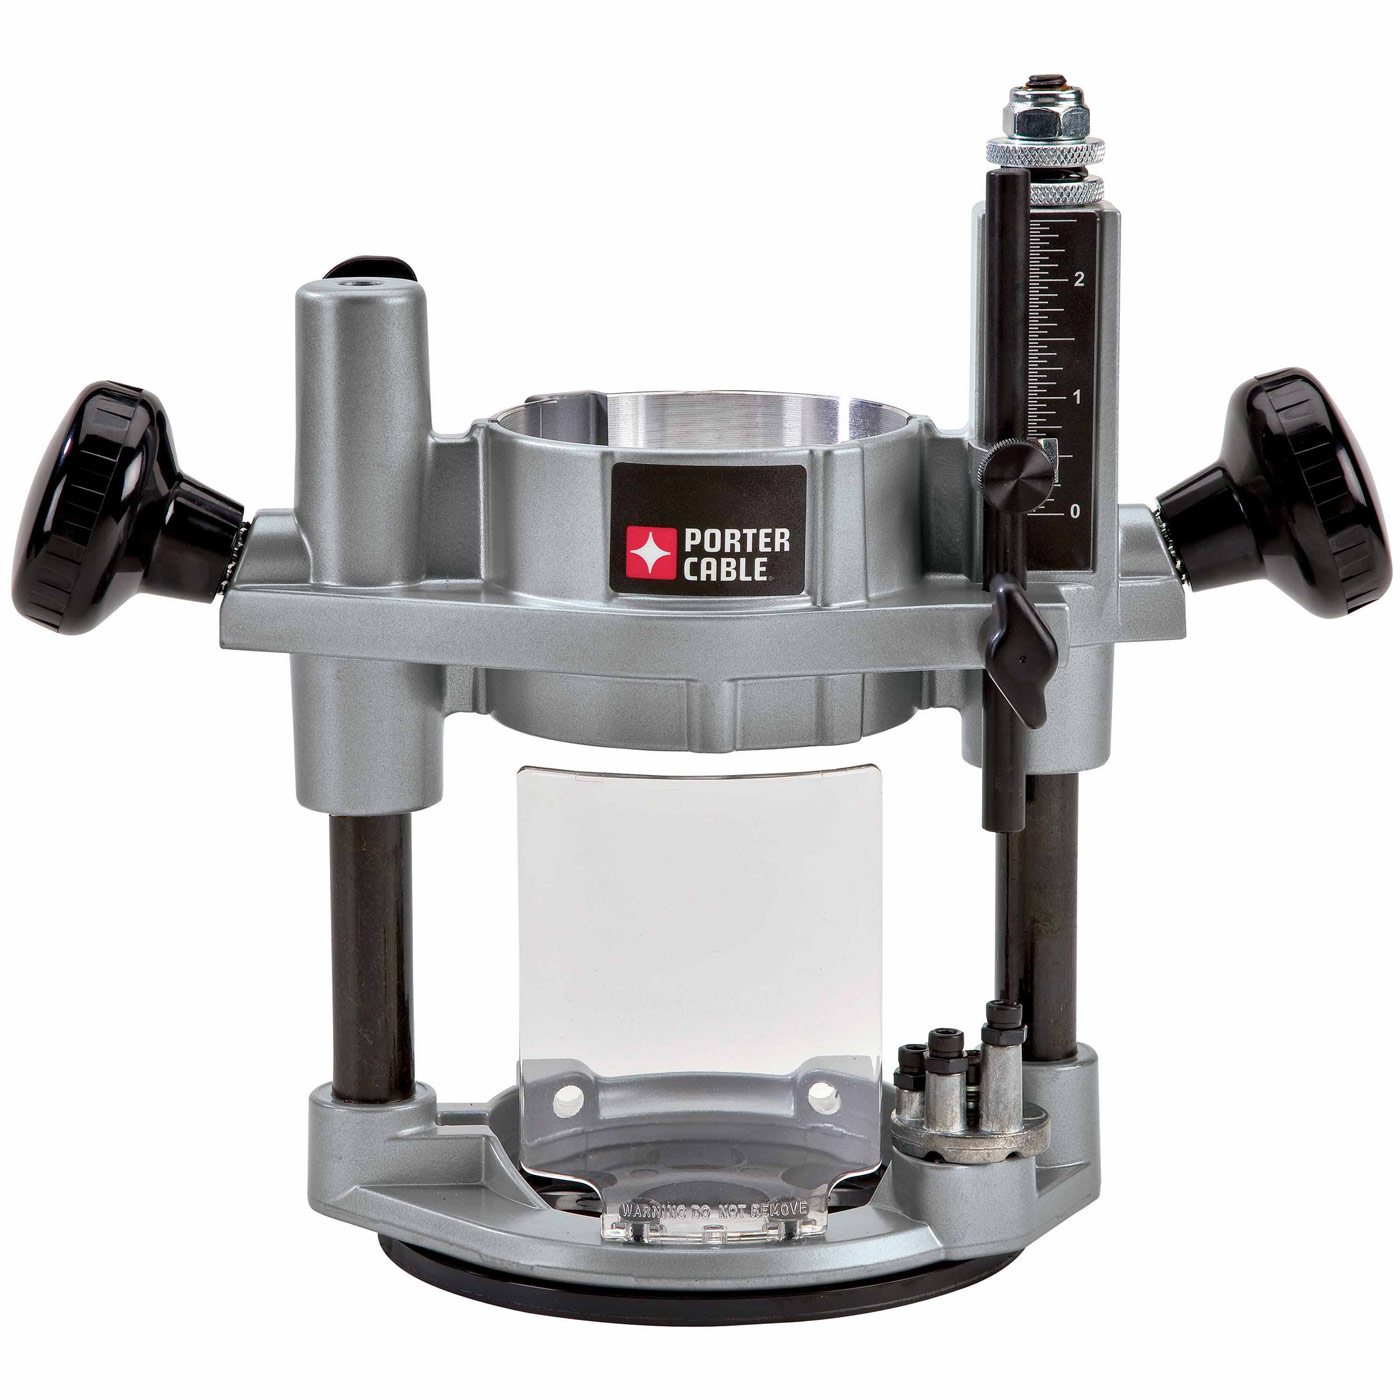 Porter cable 6931 plunge router base greentooth Choice Image